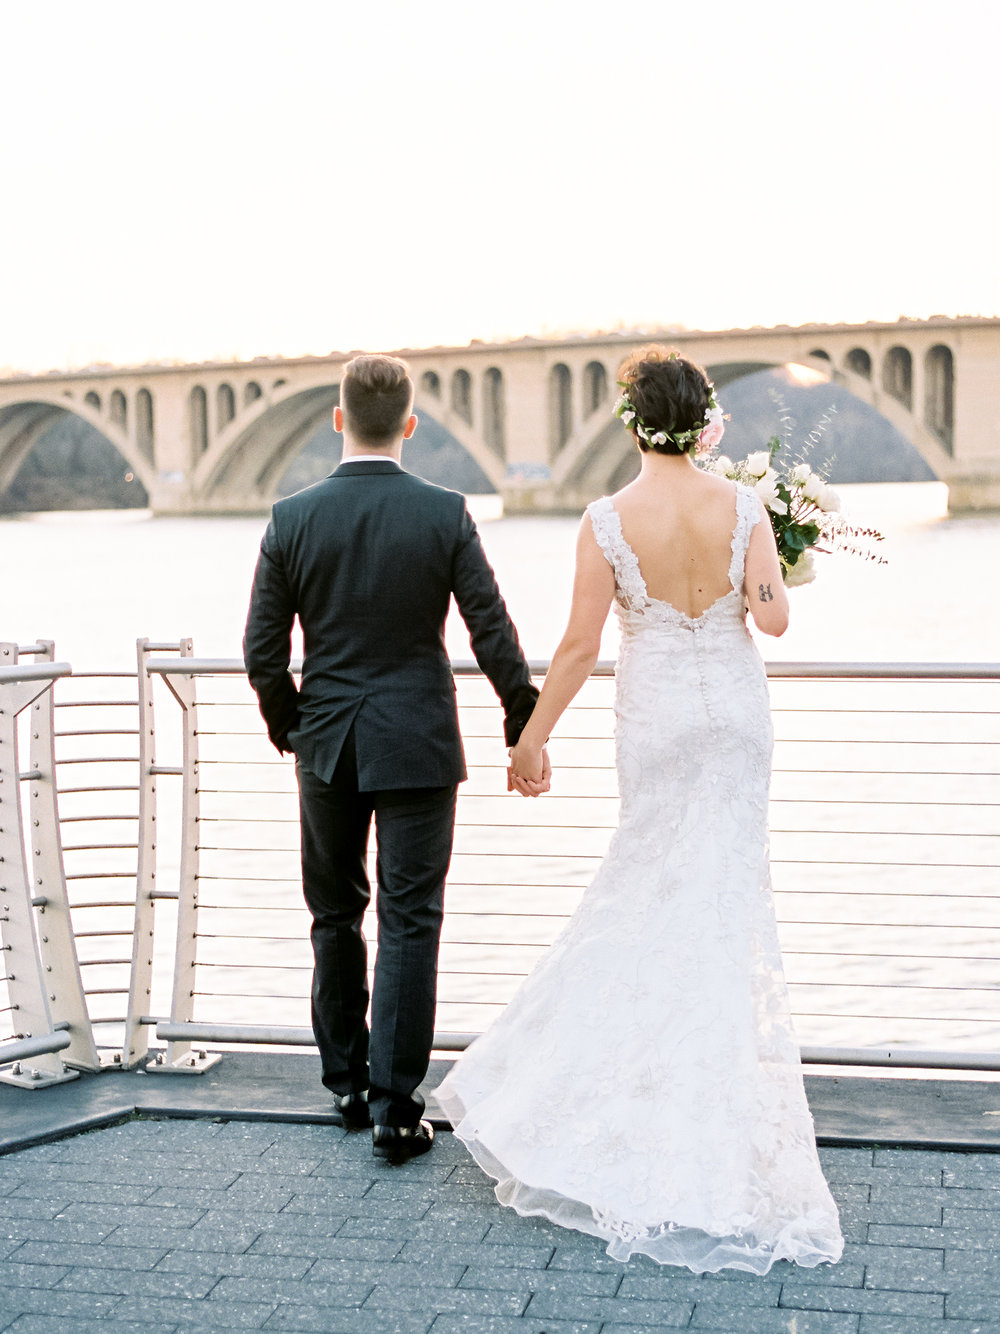 Georgetown Wedding by Destination Wedding Photographer Matt Erickson Photography